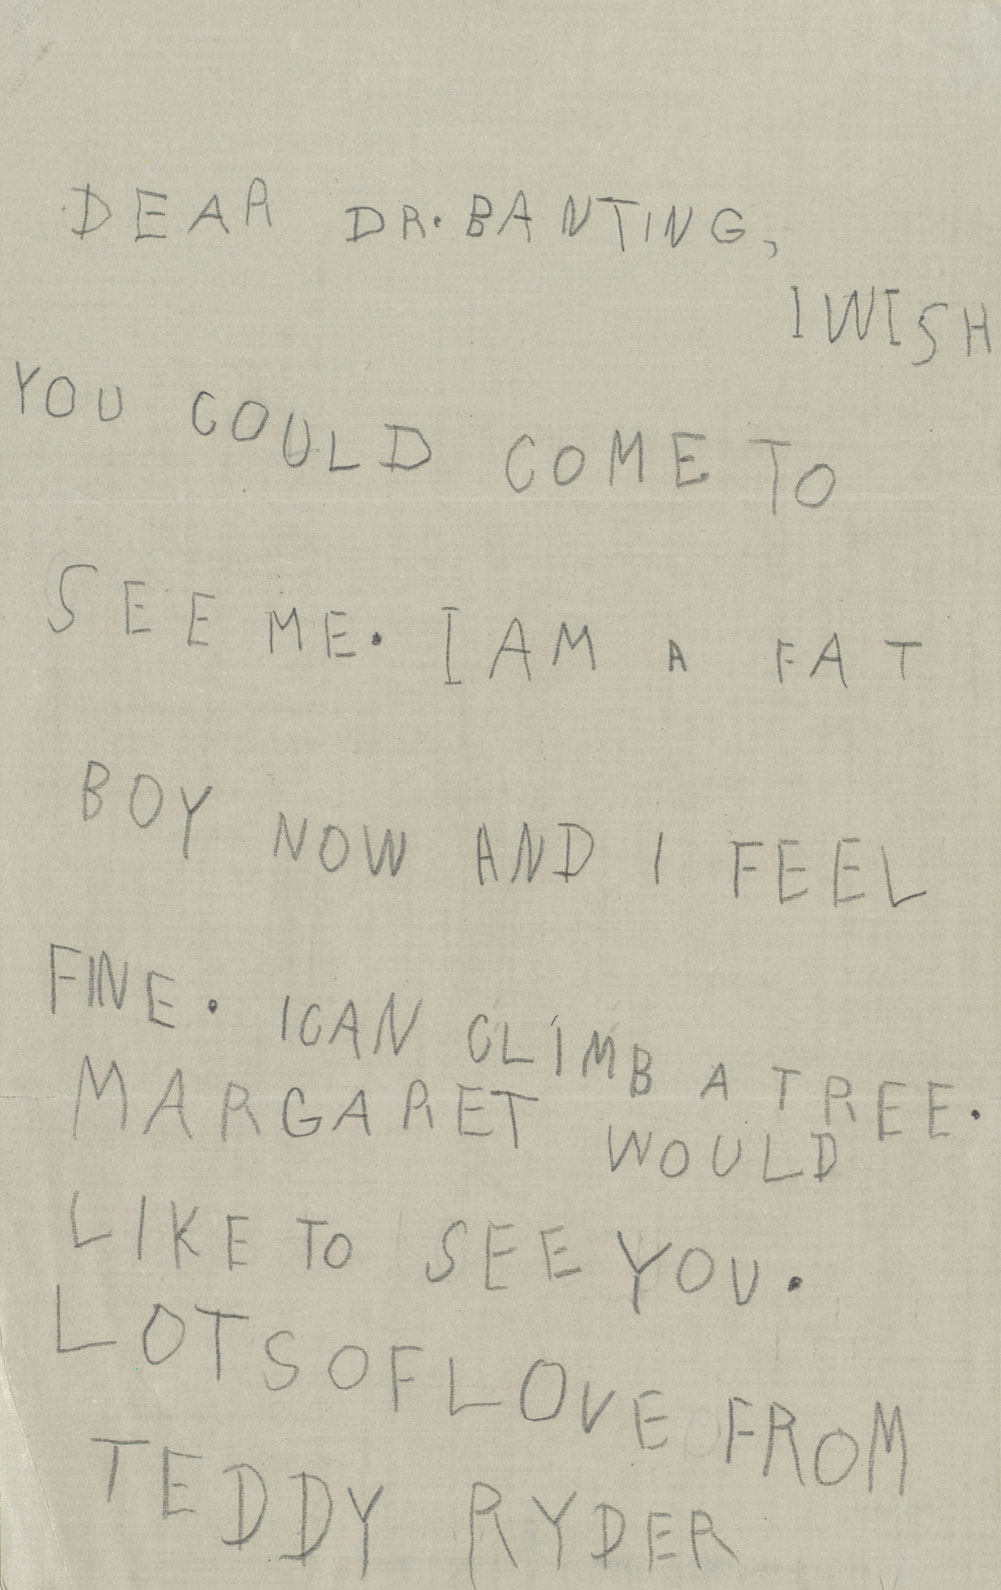 A handwritten letter reads in part: Dear Dr. Banting, I am a fat boy now and feel fine. Lots of love from Teddy Ryder.